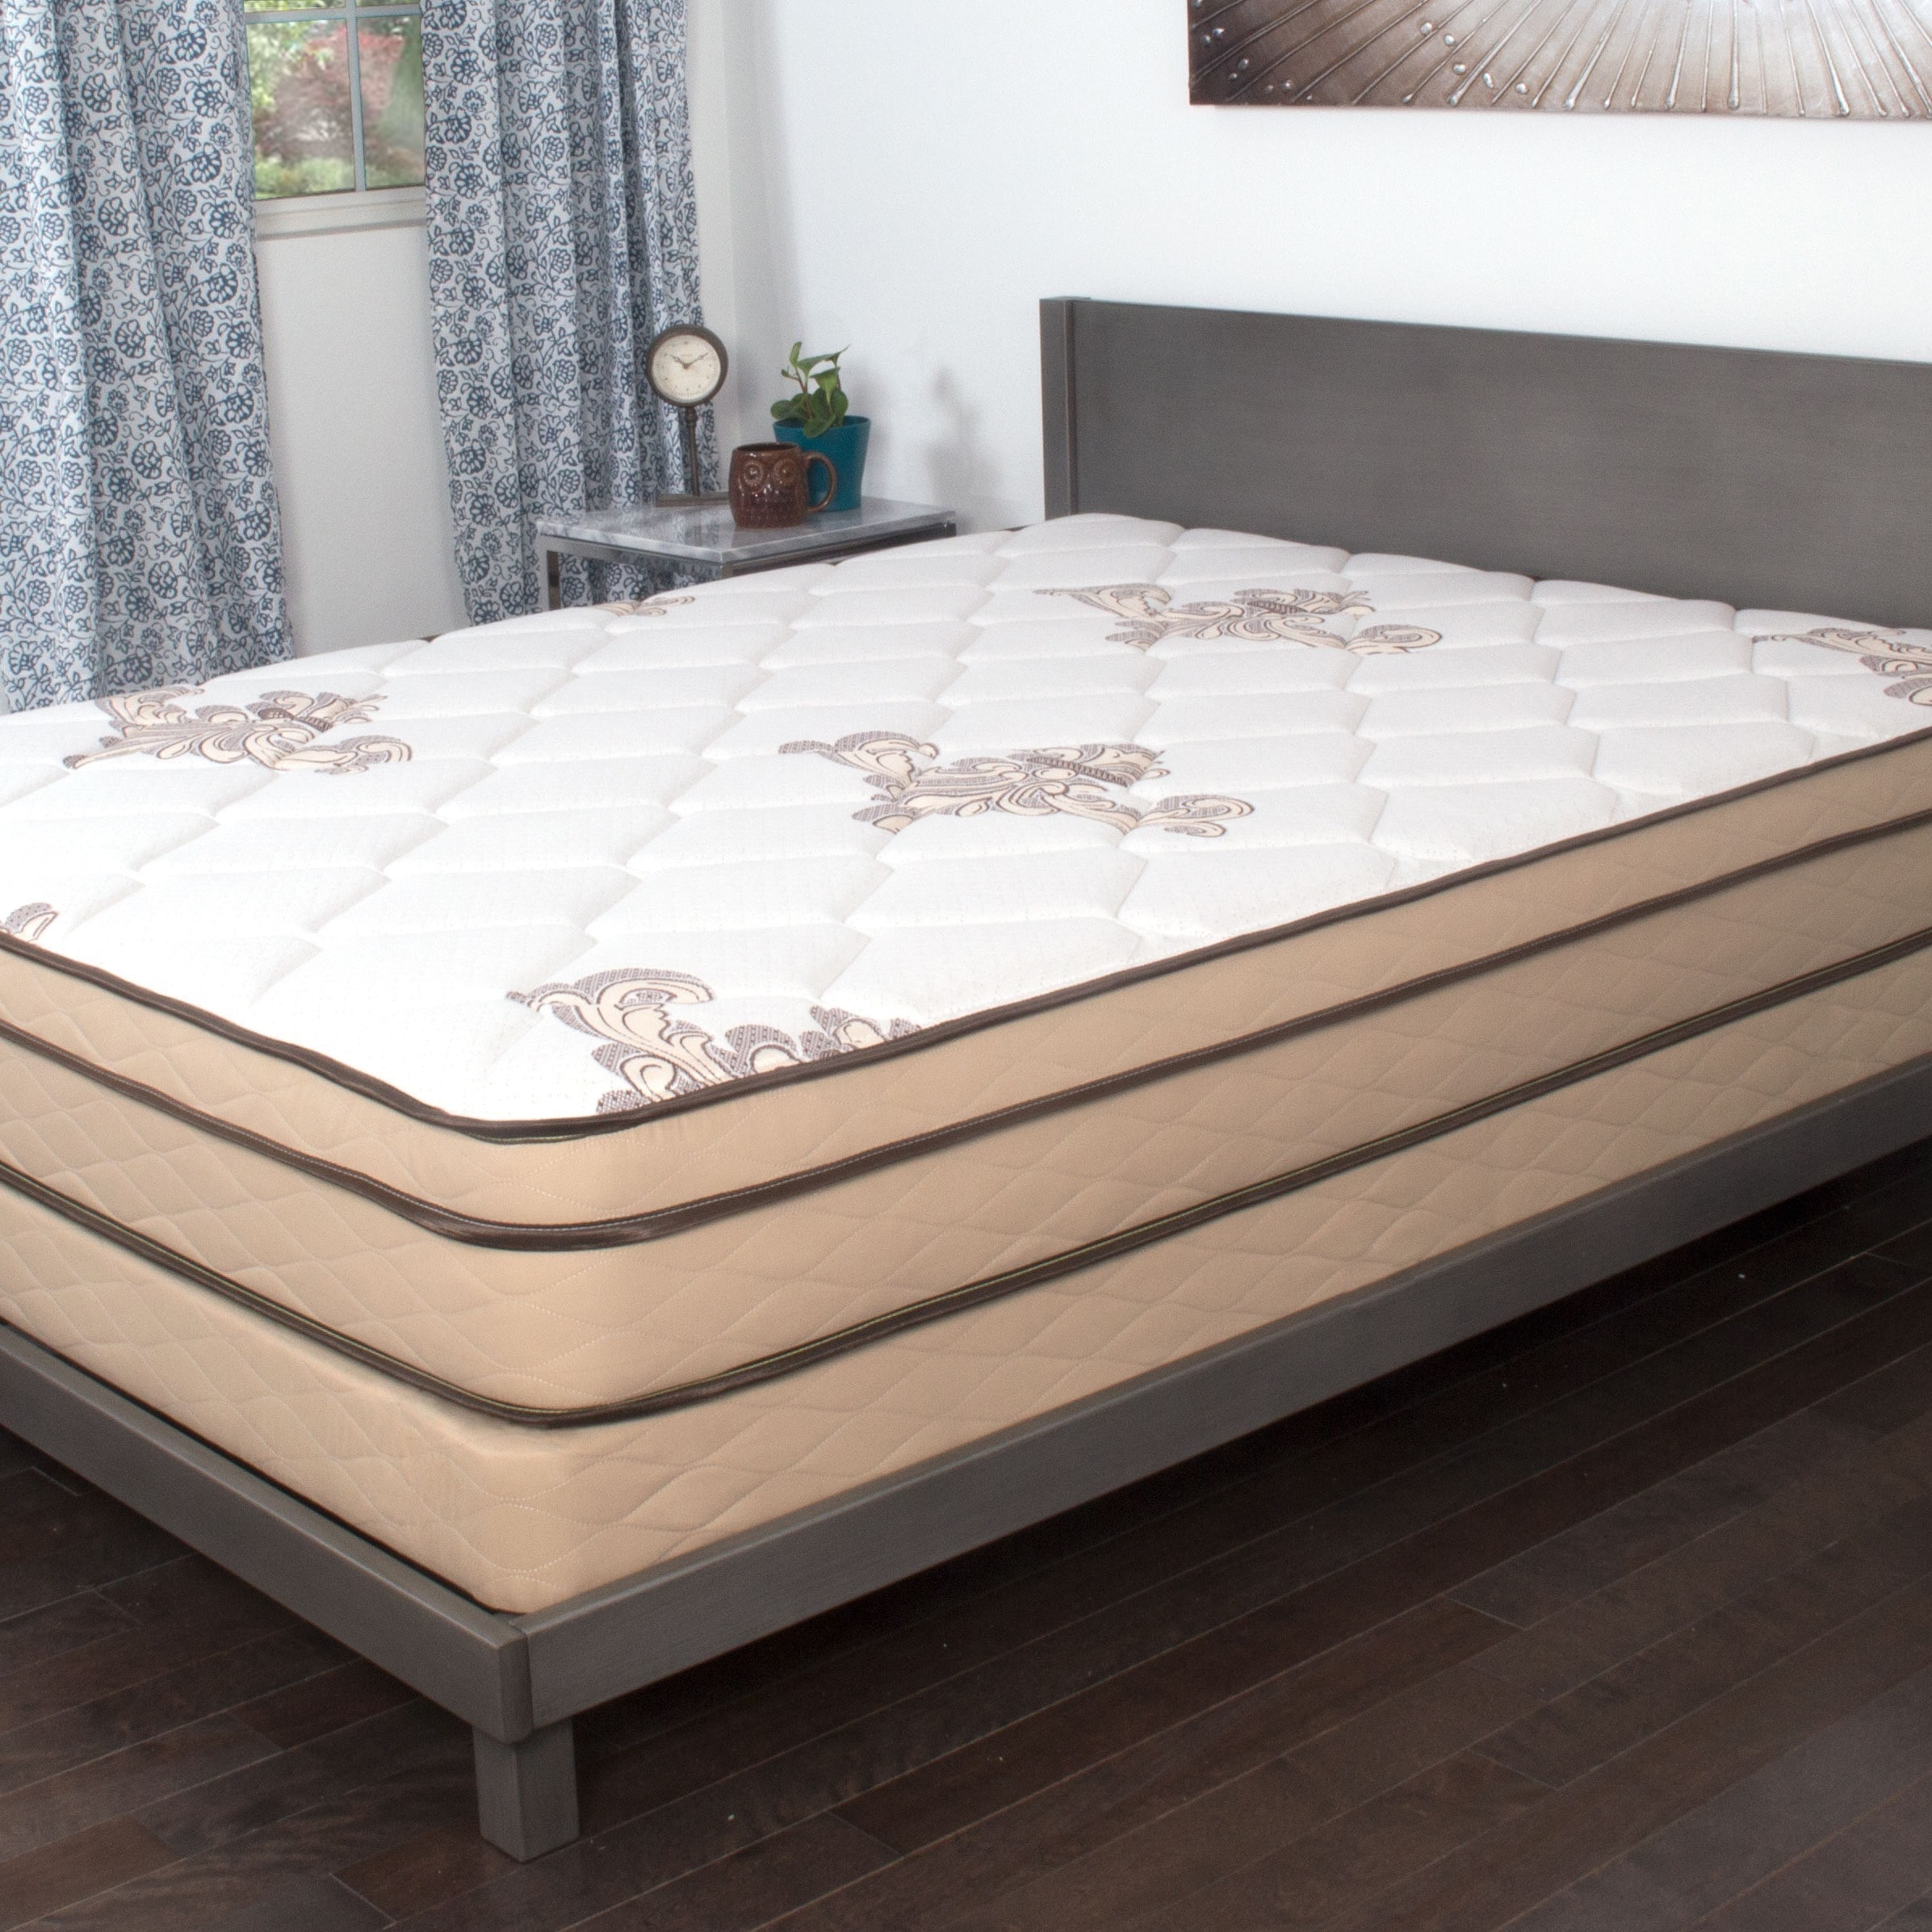 post metal unique mattress related rv of bed custom lovely measurements mutable size dimensions queen inspiration frame